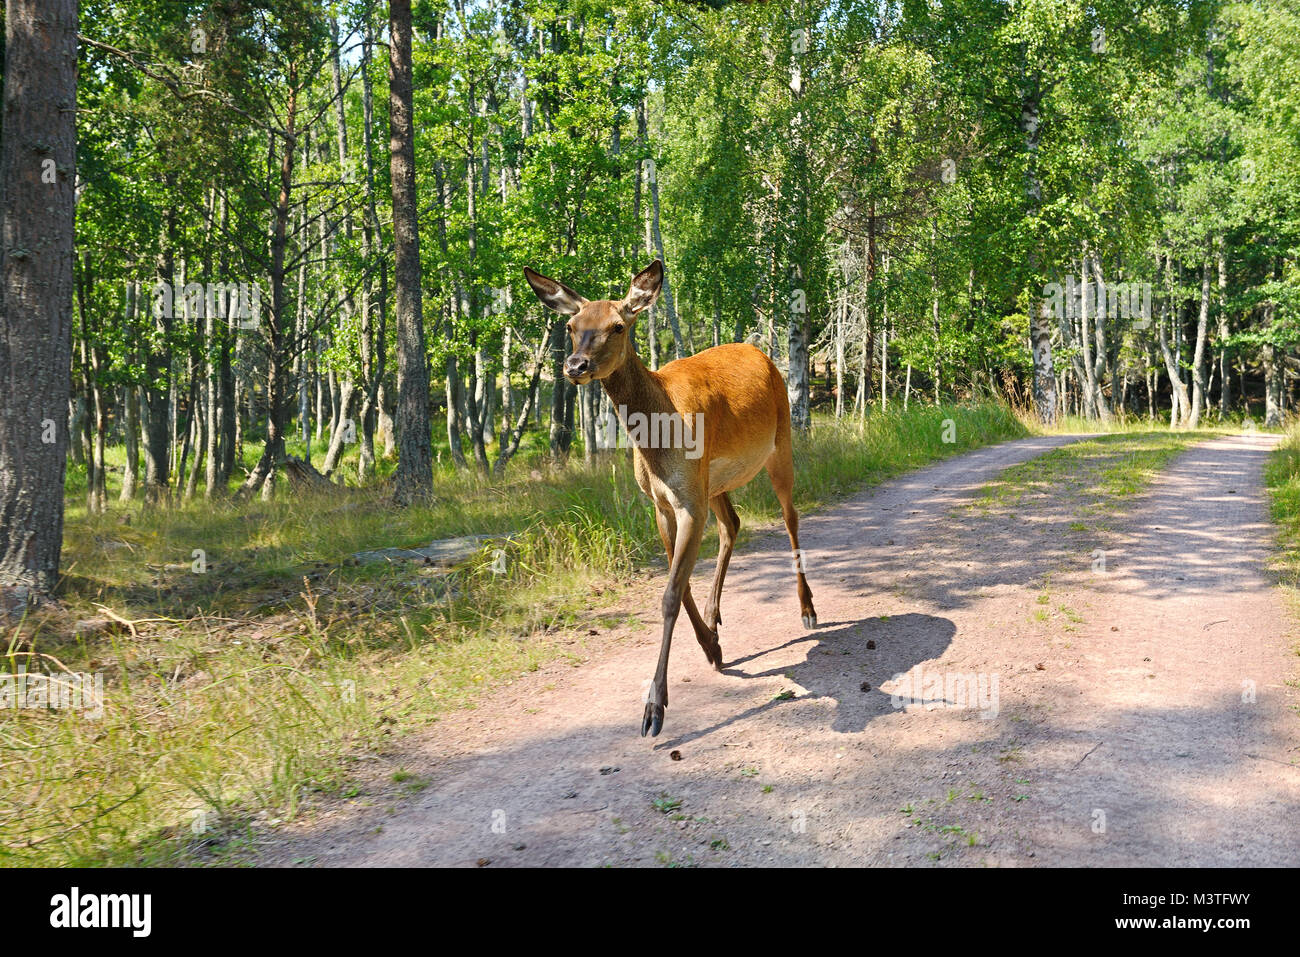 Red deer (Cervus elaphus), Female (hind), runs along country road - Stock Image